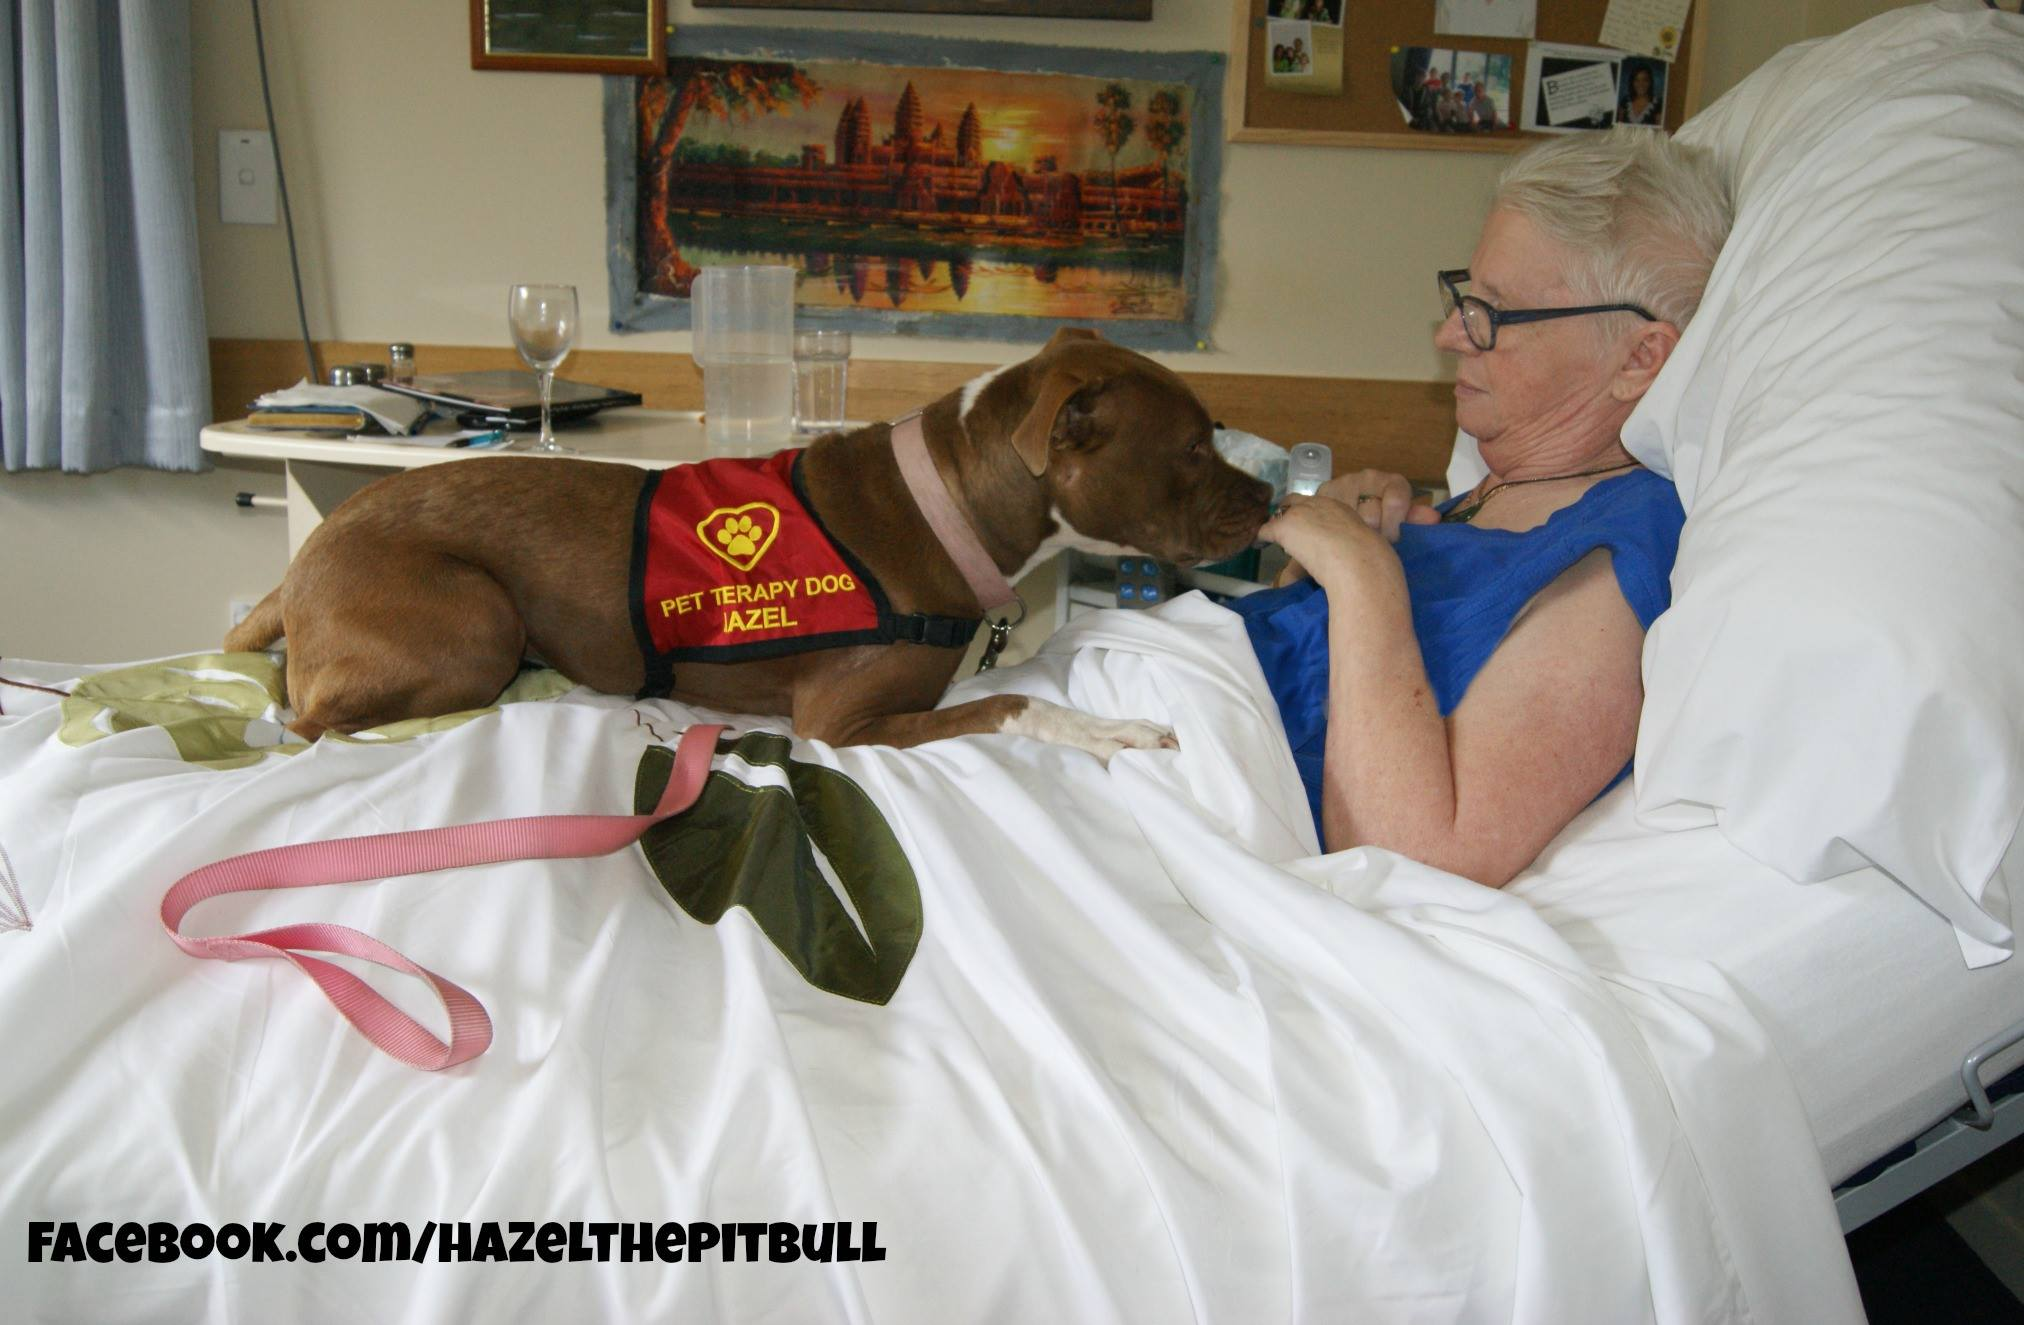 Hazel spayed fabulous stubbydog therapy 1betcityfo Image collections